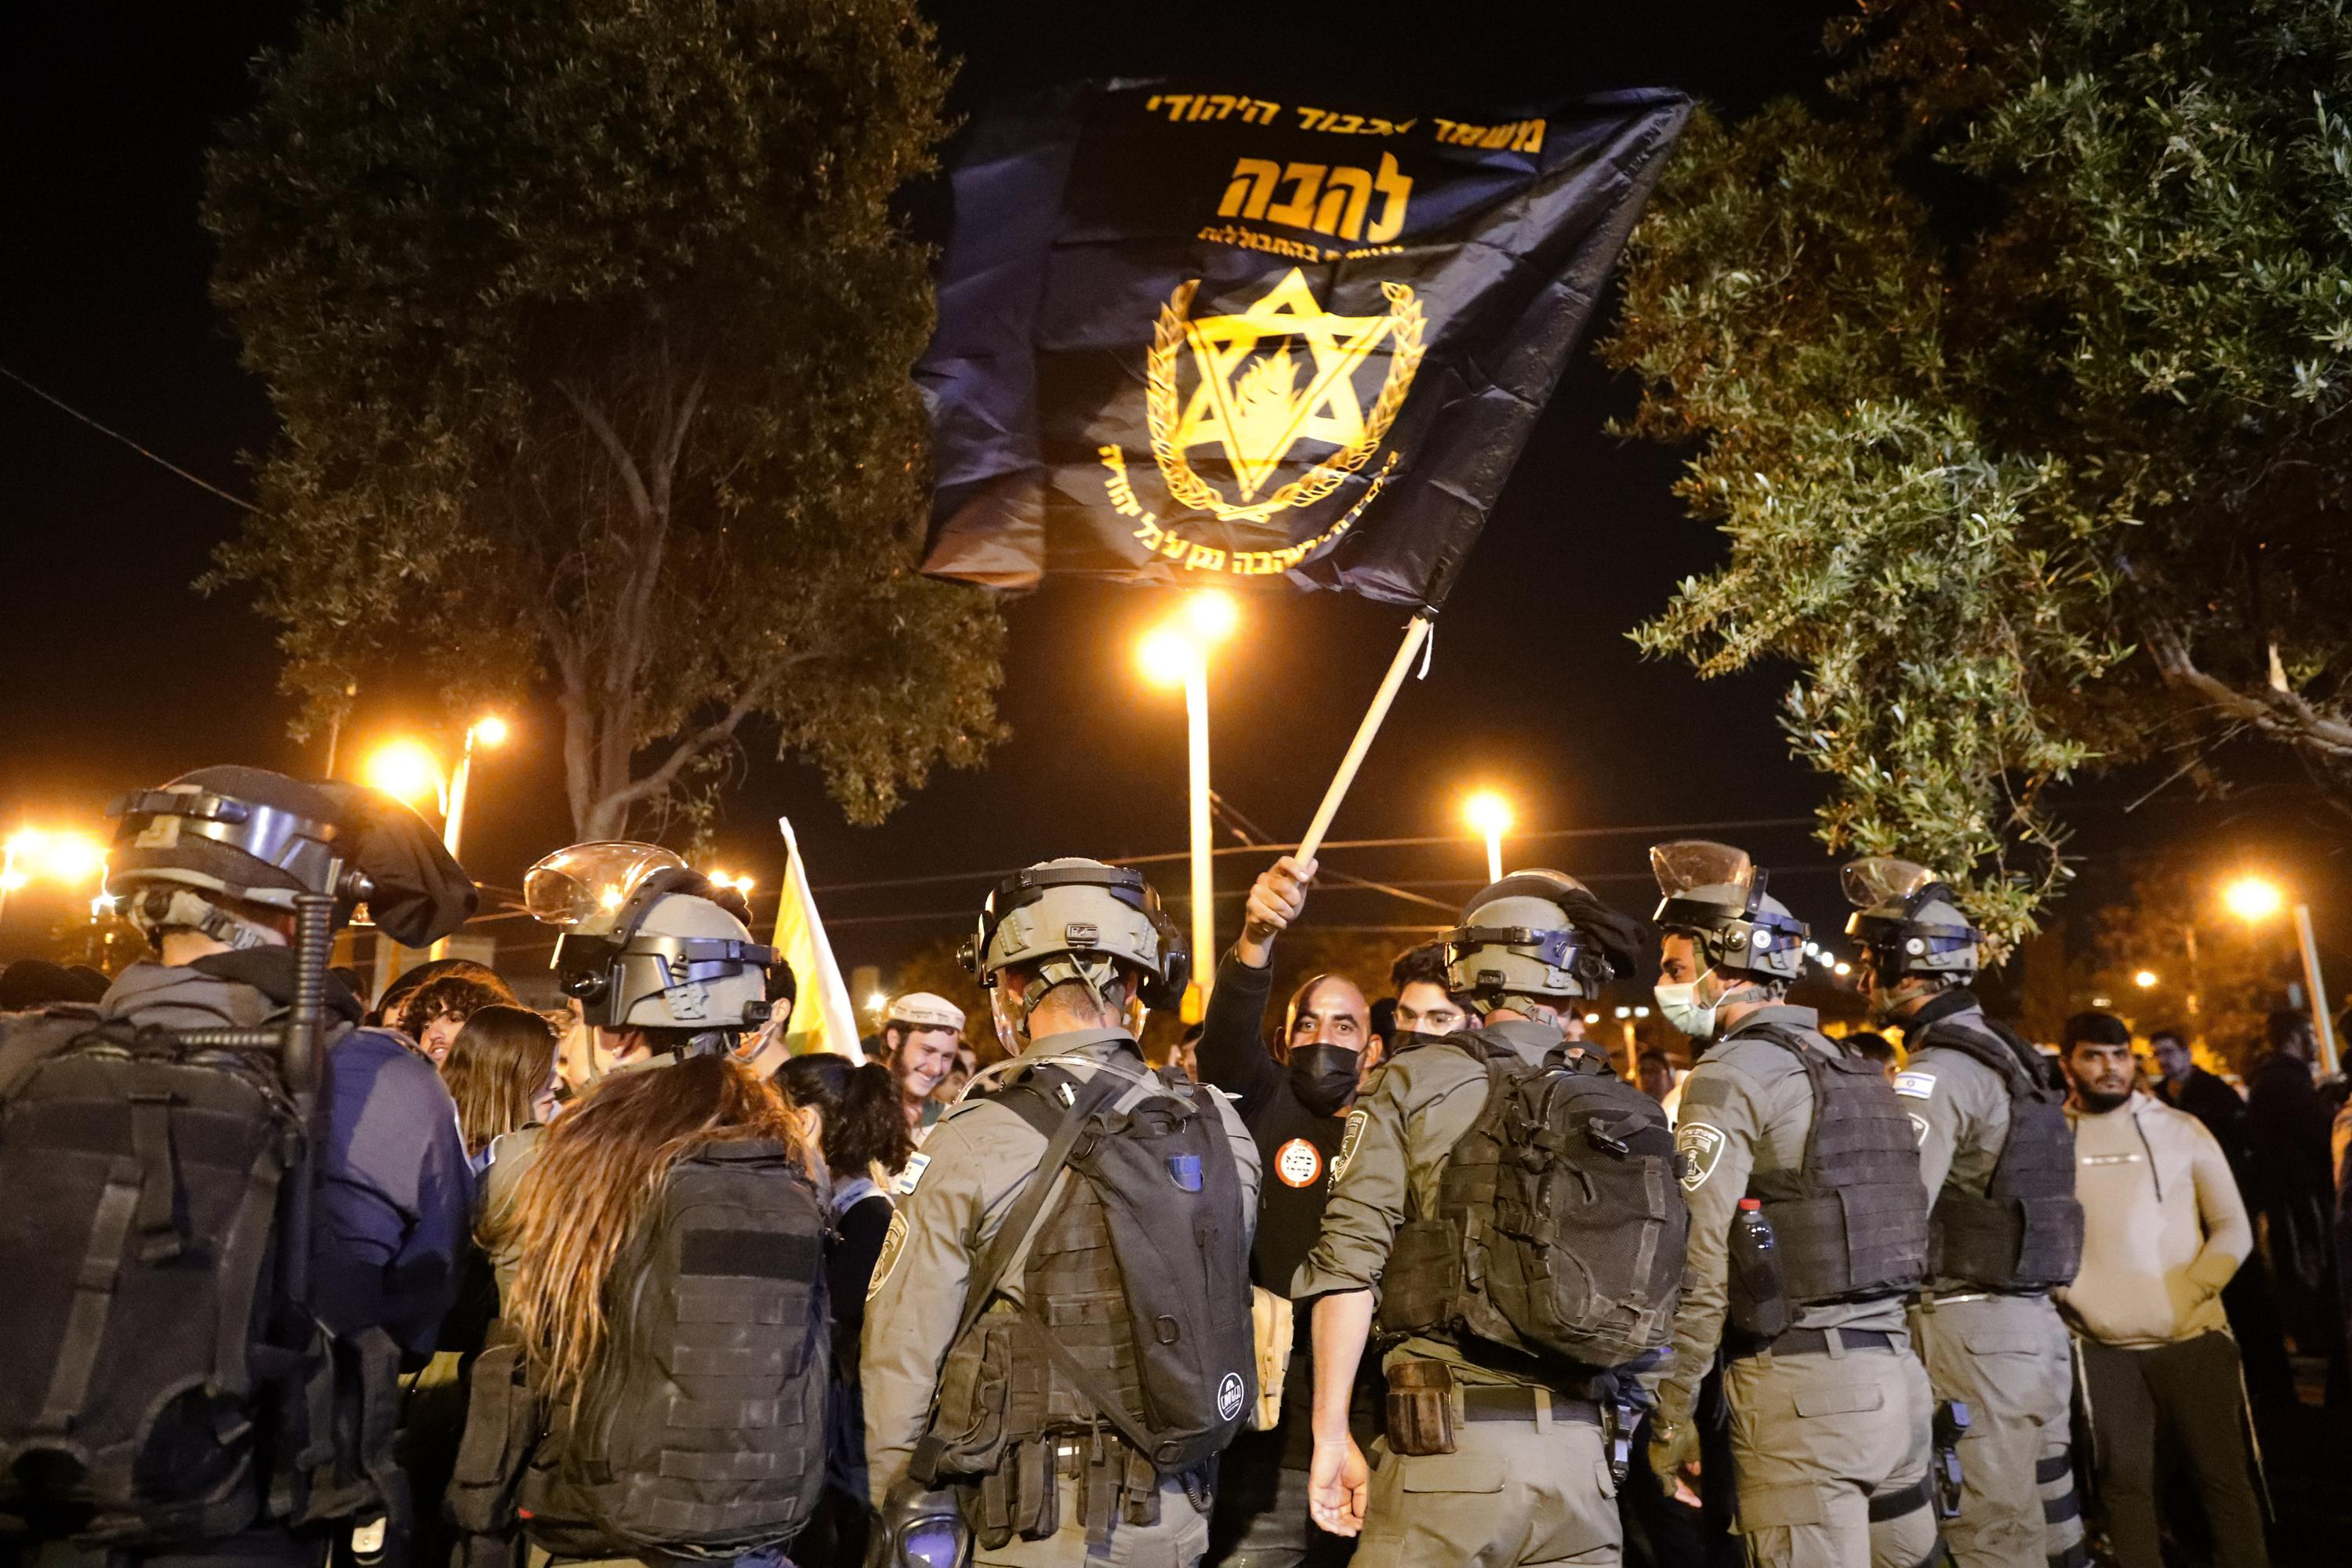 New players pose additional threats to Jerusalem tensions – The Associated Press